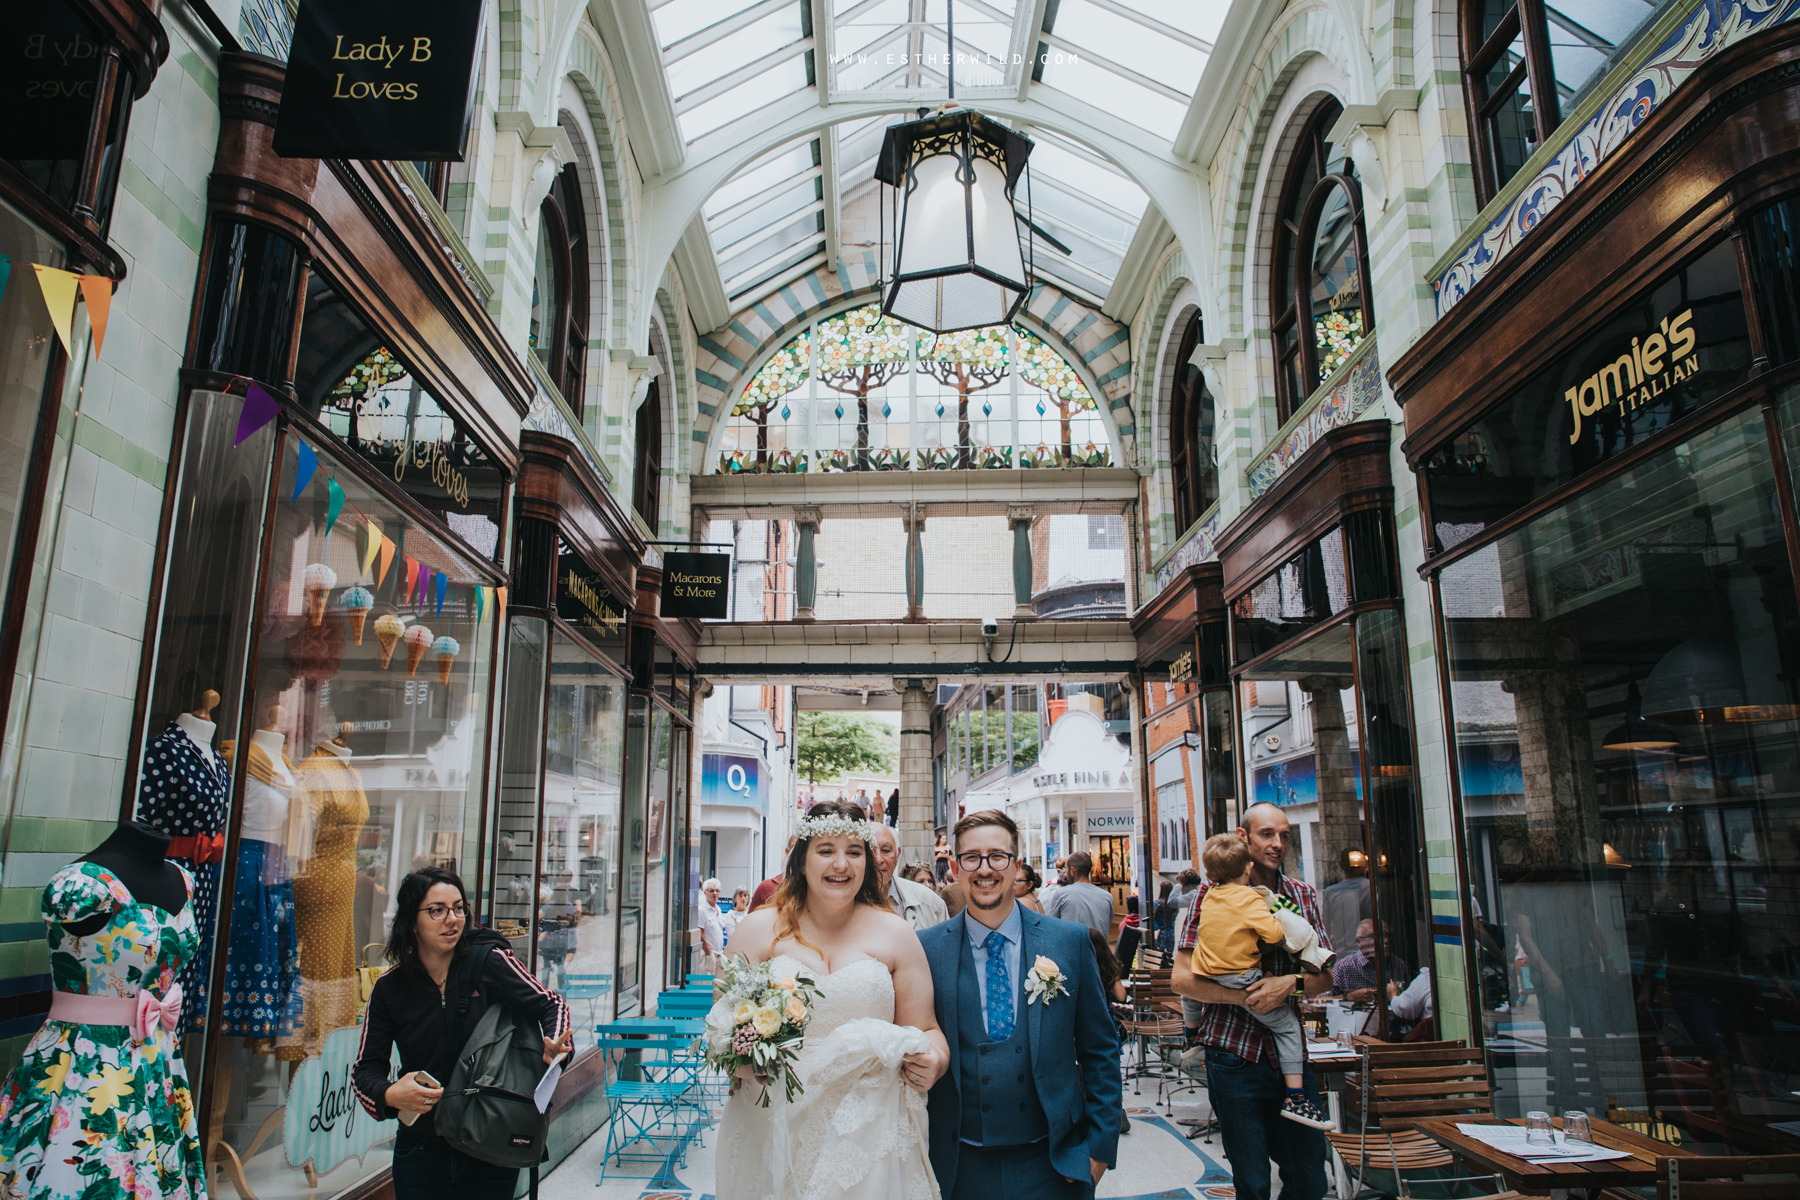 Norwich_Castle_Arcade_Grosvenor_Chip_Birdcage_Cathedral_Cloisters_Refectory_Wedding_Photography_Esther_Wild_Photographer_Norfolk_Kings_Lynn_3R8A1291.jpg